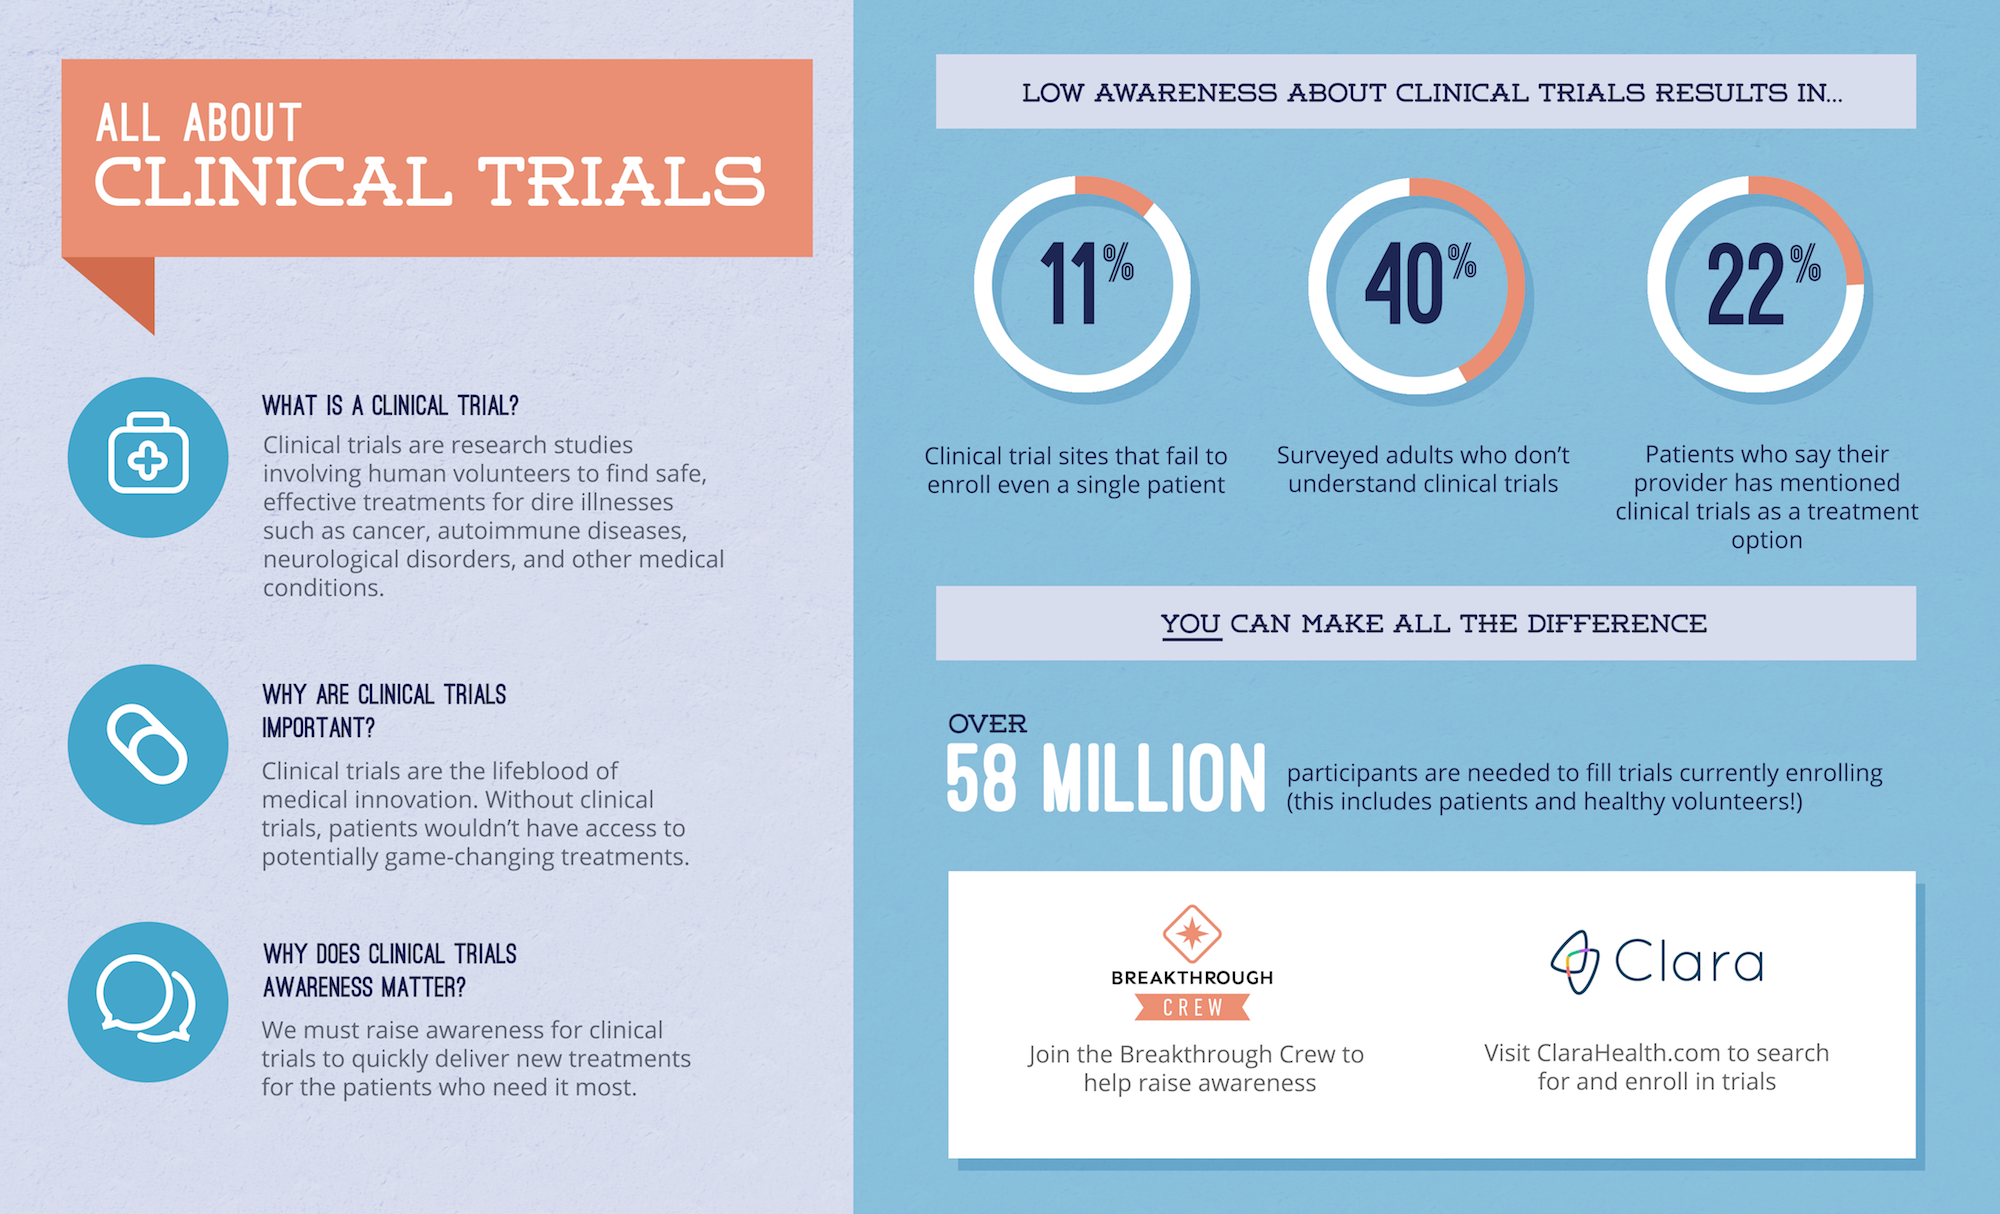 About Clinical Trials